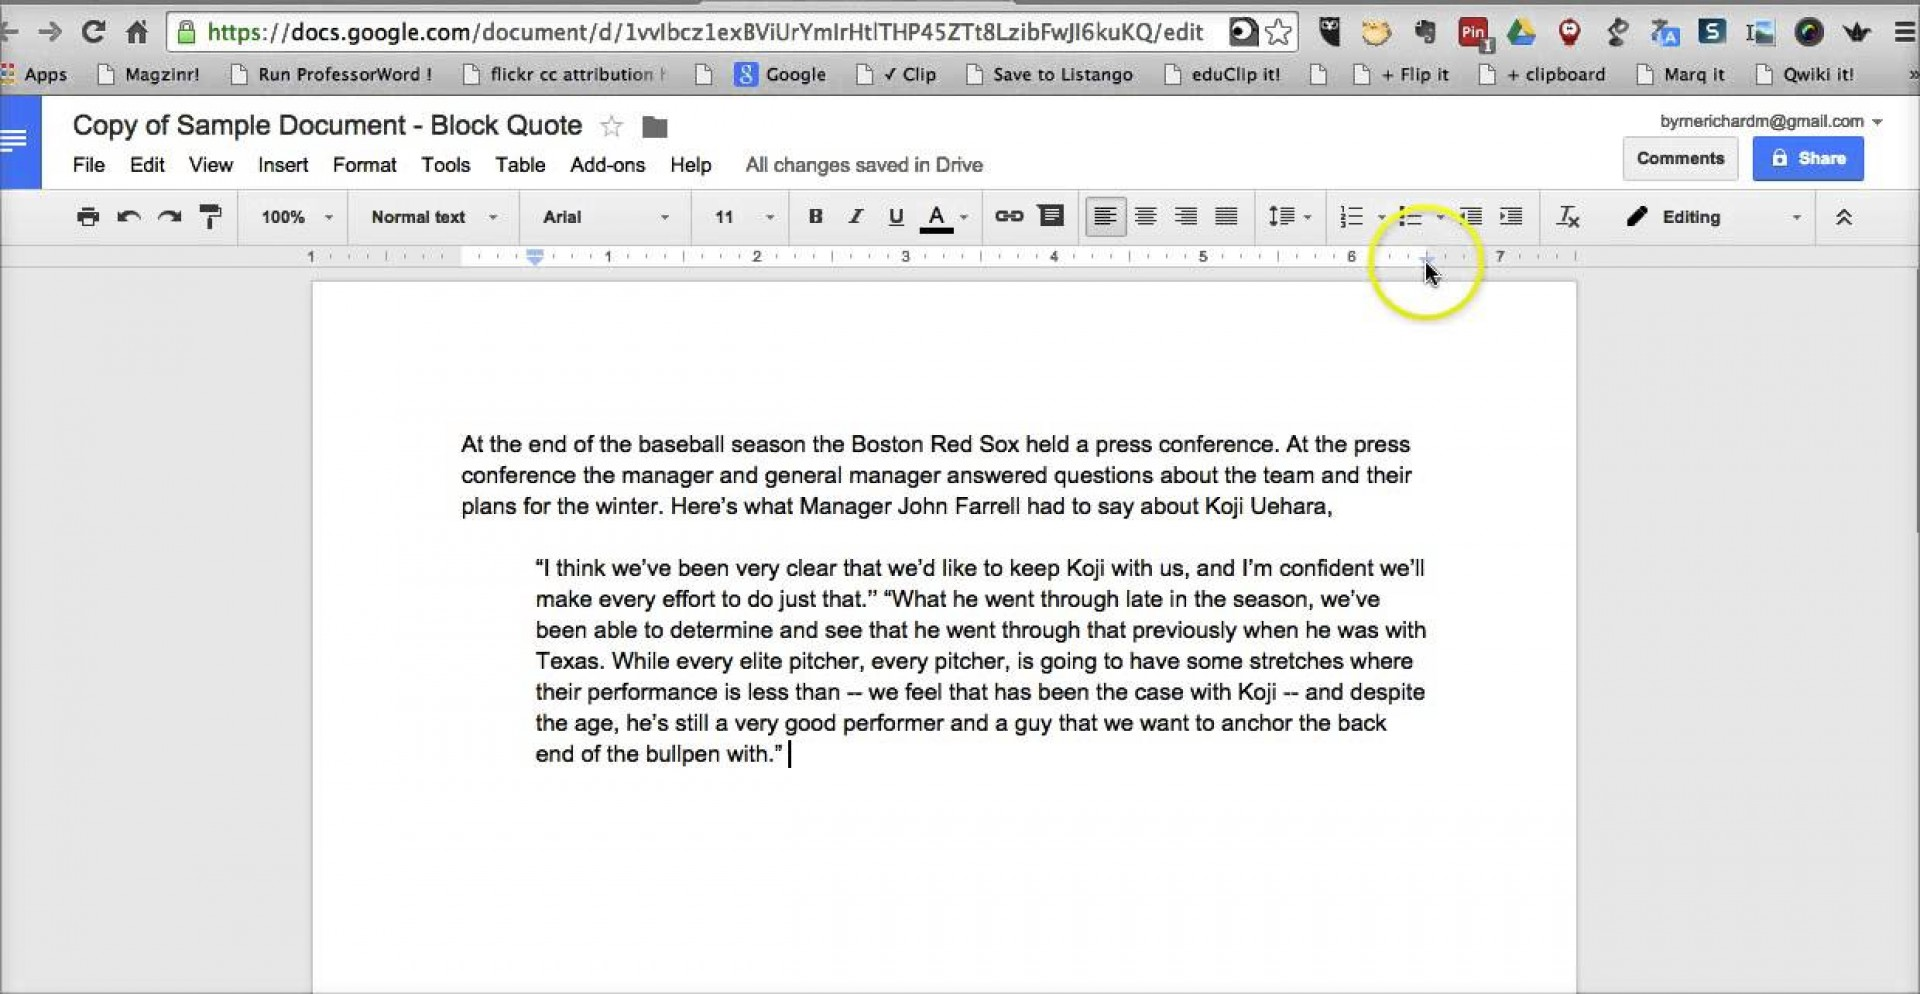 004 Maxresdefault Essay Example How To Insert Quotes Into Breathtaking An A Long Quote Apa In Mla Put Style 1920